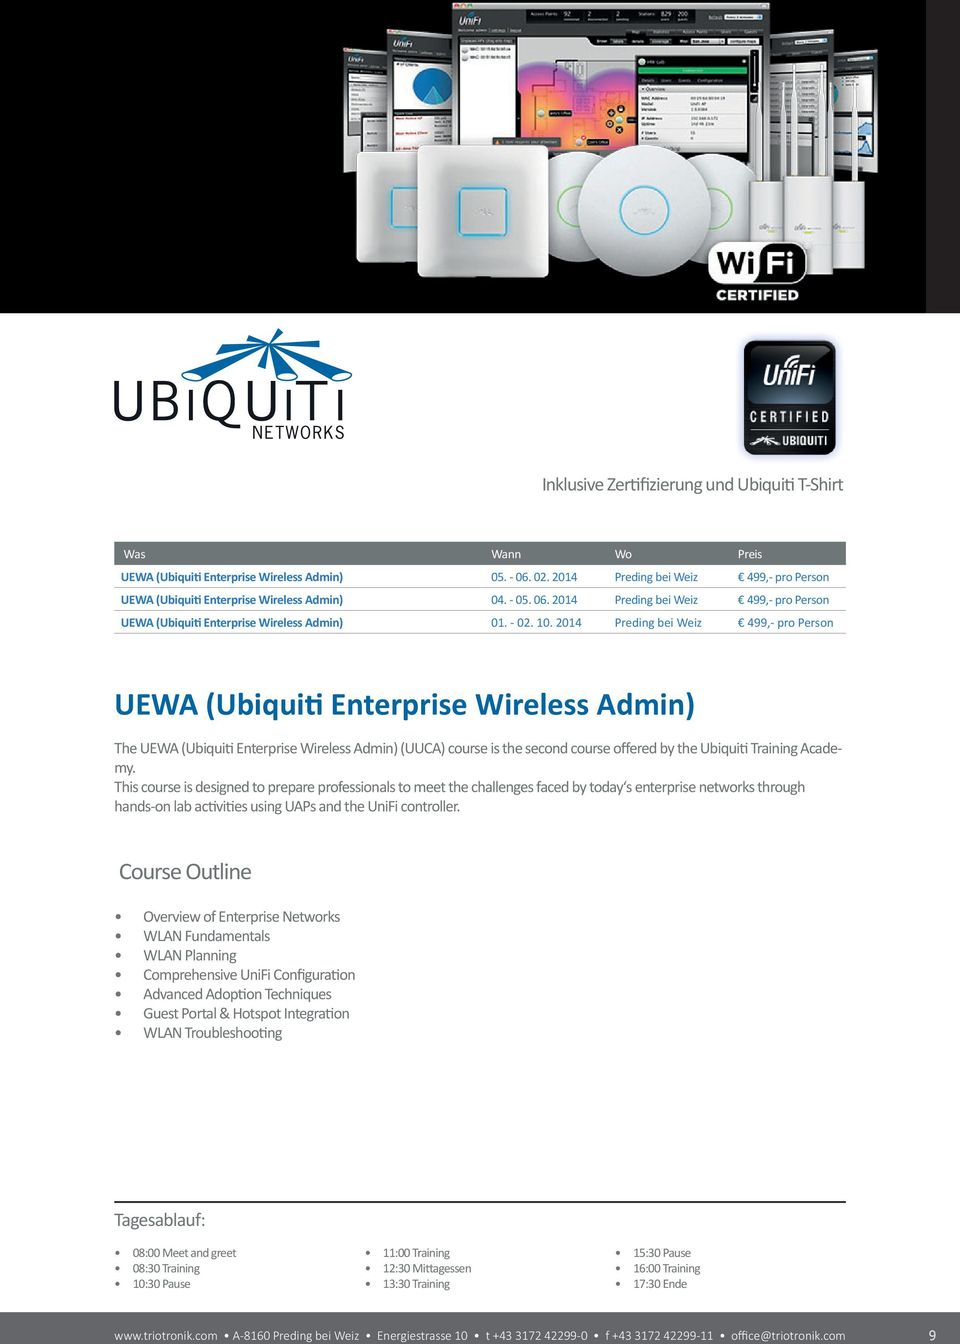 2014 Preding bei Weiz 499,- pro Person UEWA (Ubiquiti Enterprise Wireless Admin) The UEWA (Ubiquiti Enterprise Wireless Admin) (UUCA) course is the second course offered by the Ubiquiti Training